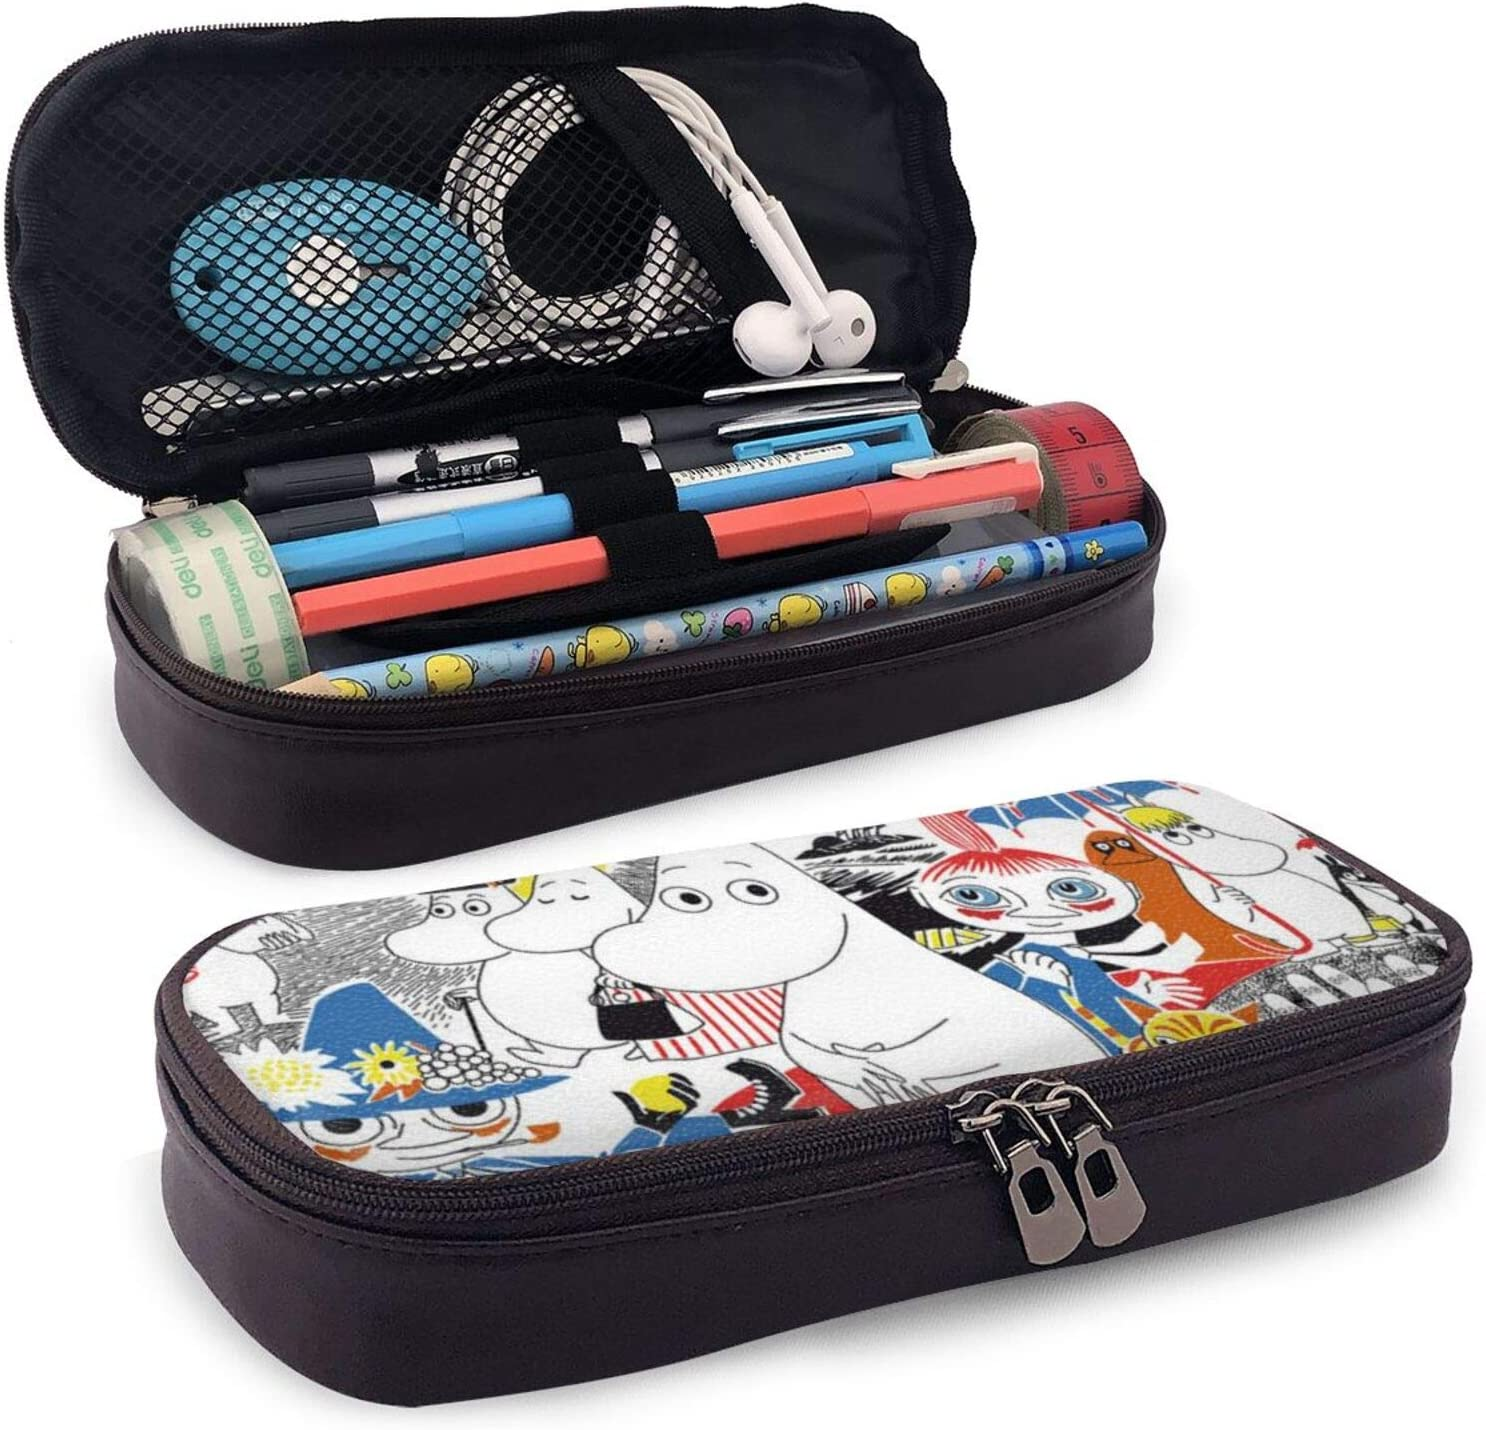 Moomin Pencil Pen Case Office College Large Storage High Bag Pouch Holder Box Organizer for Students Teens Adult